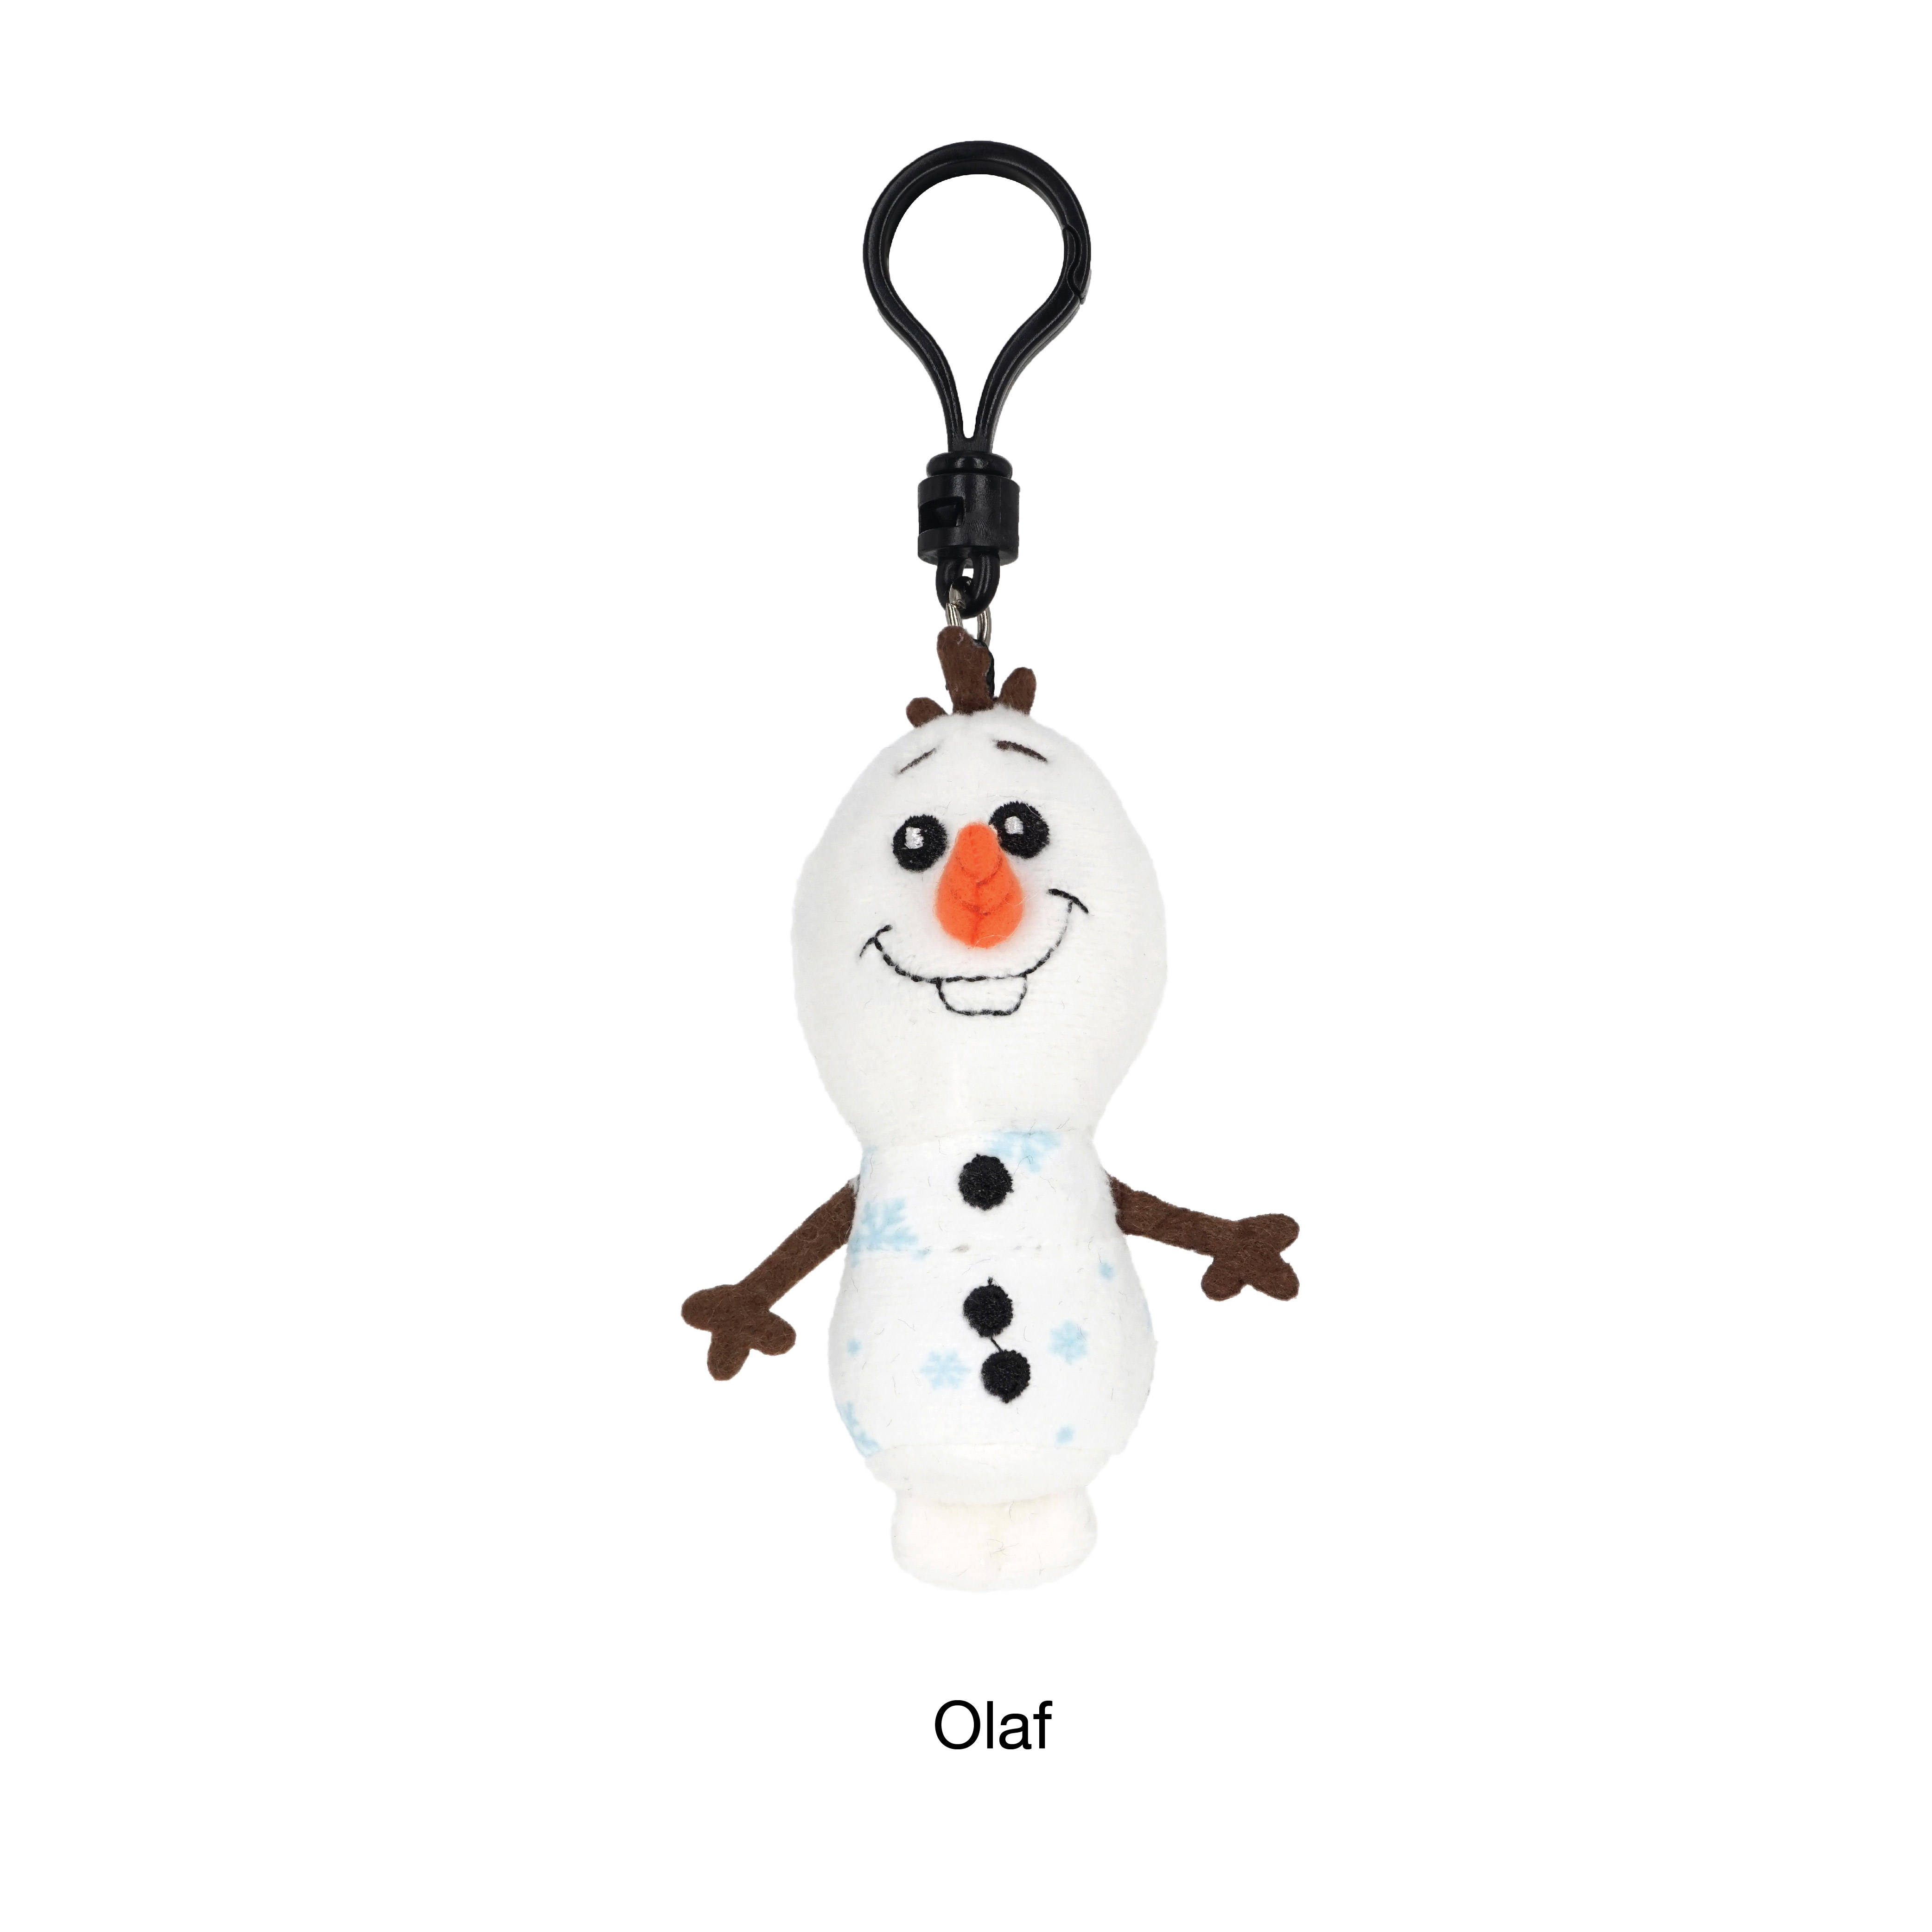 HOT SELLING CHARACTER PLUSH GIFT TOY OFFICE FURNITURE 3D FOAM FIGURES DISNEY FROZEN 2 BAG CLIP KEYRING FOR FAMILY